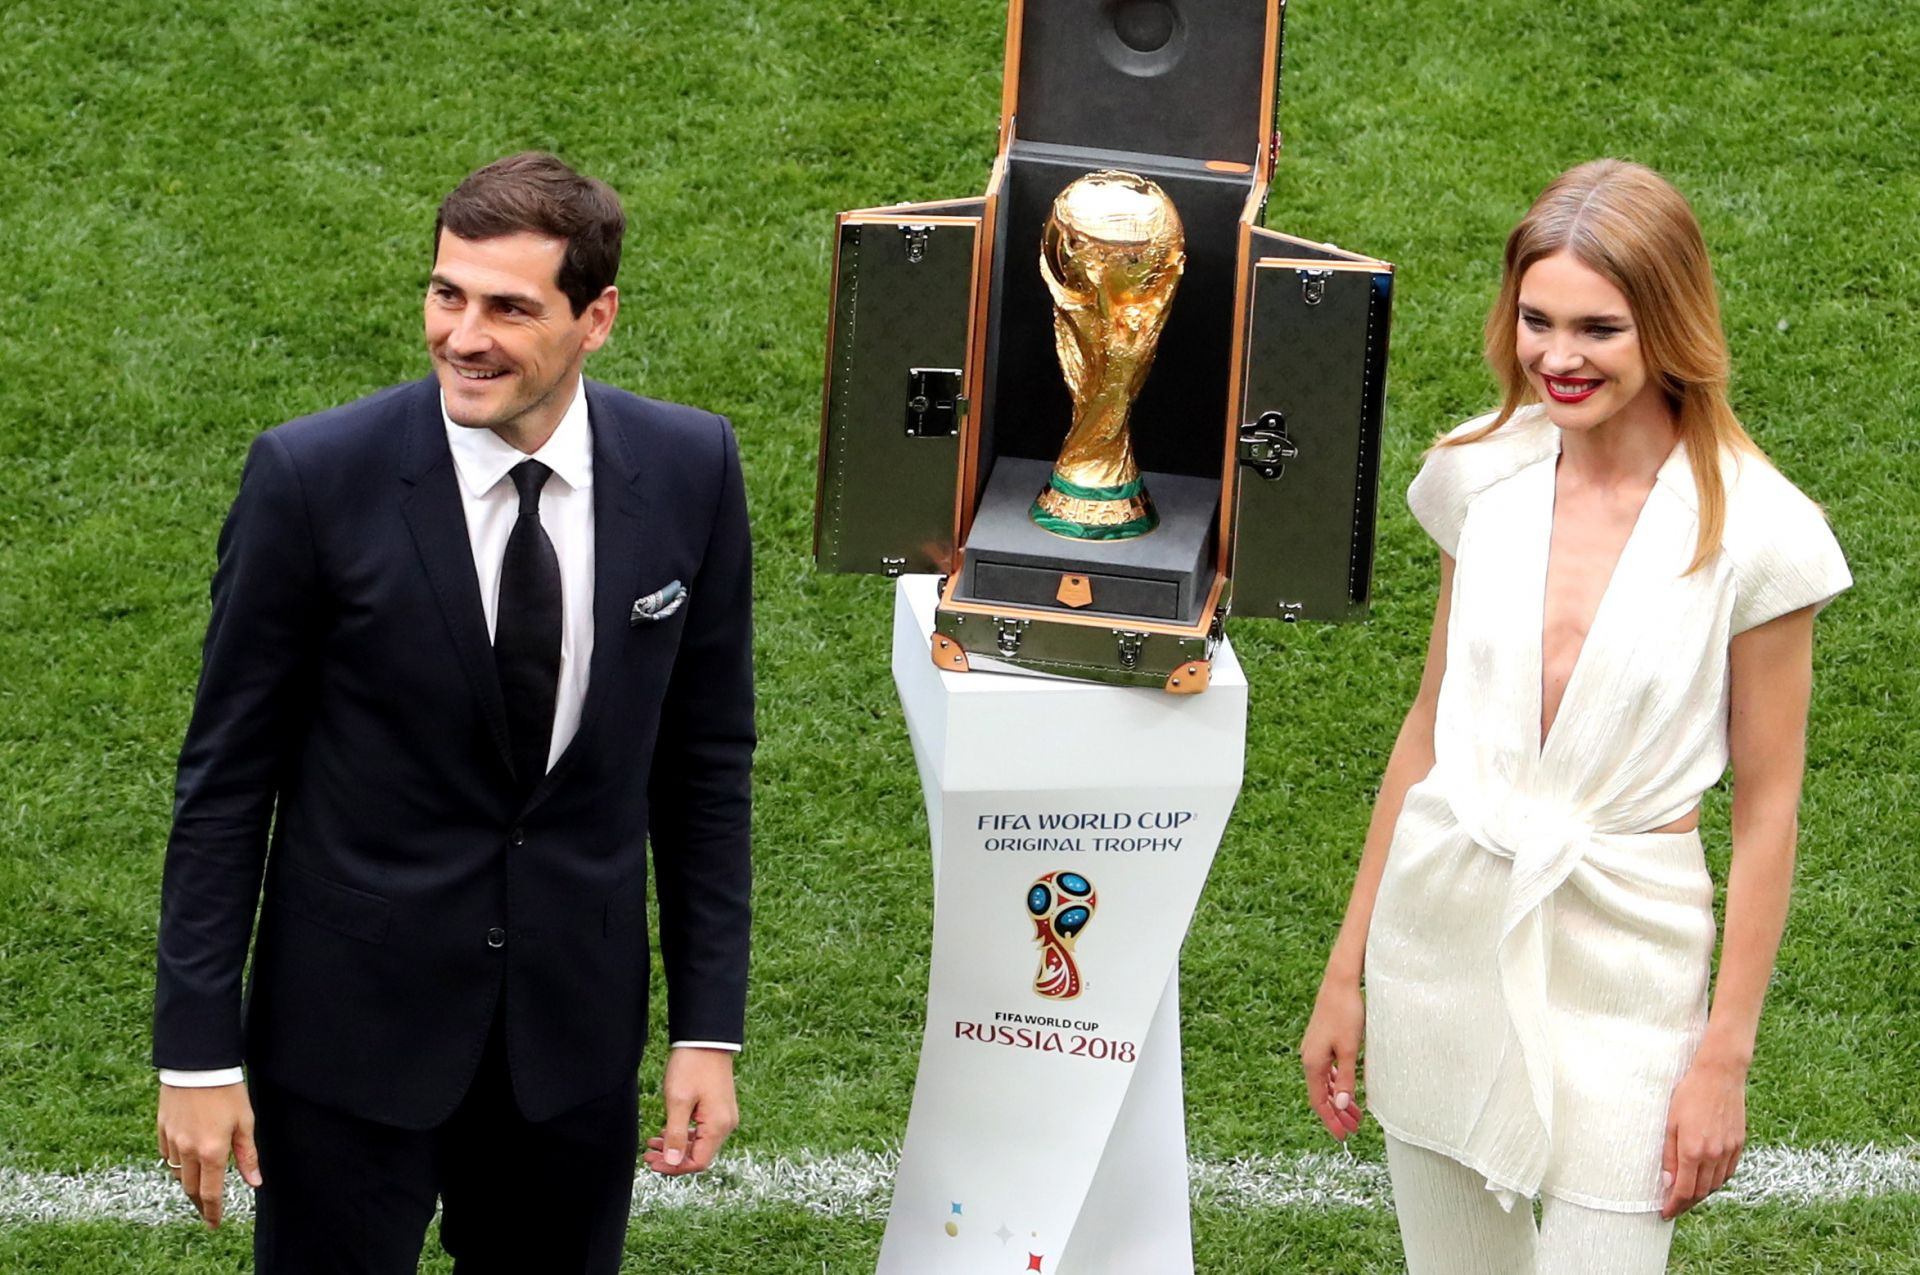 Spanish goalkeeper Iker Casillas (L) and Russian model Natalia Vodianova present the World Cup trophy